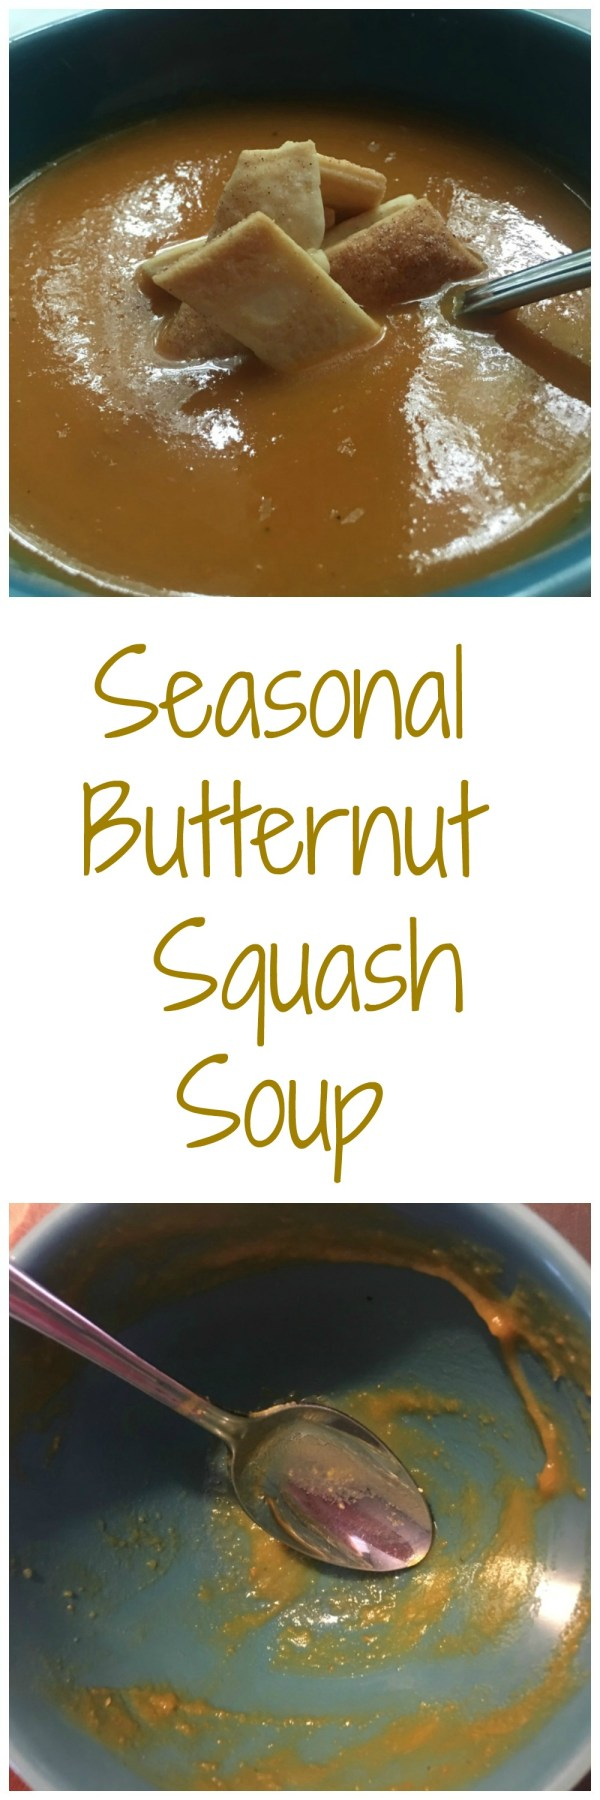 Seasonal Butternut Squash Soup